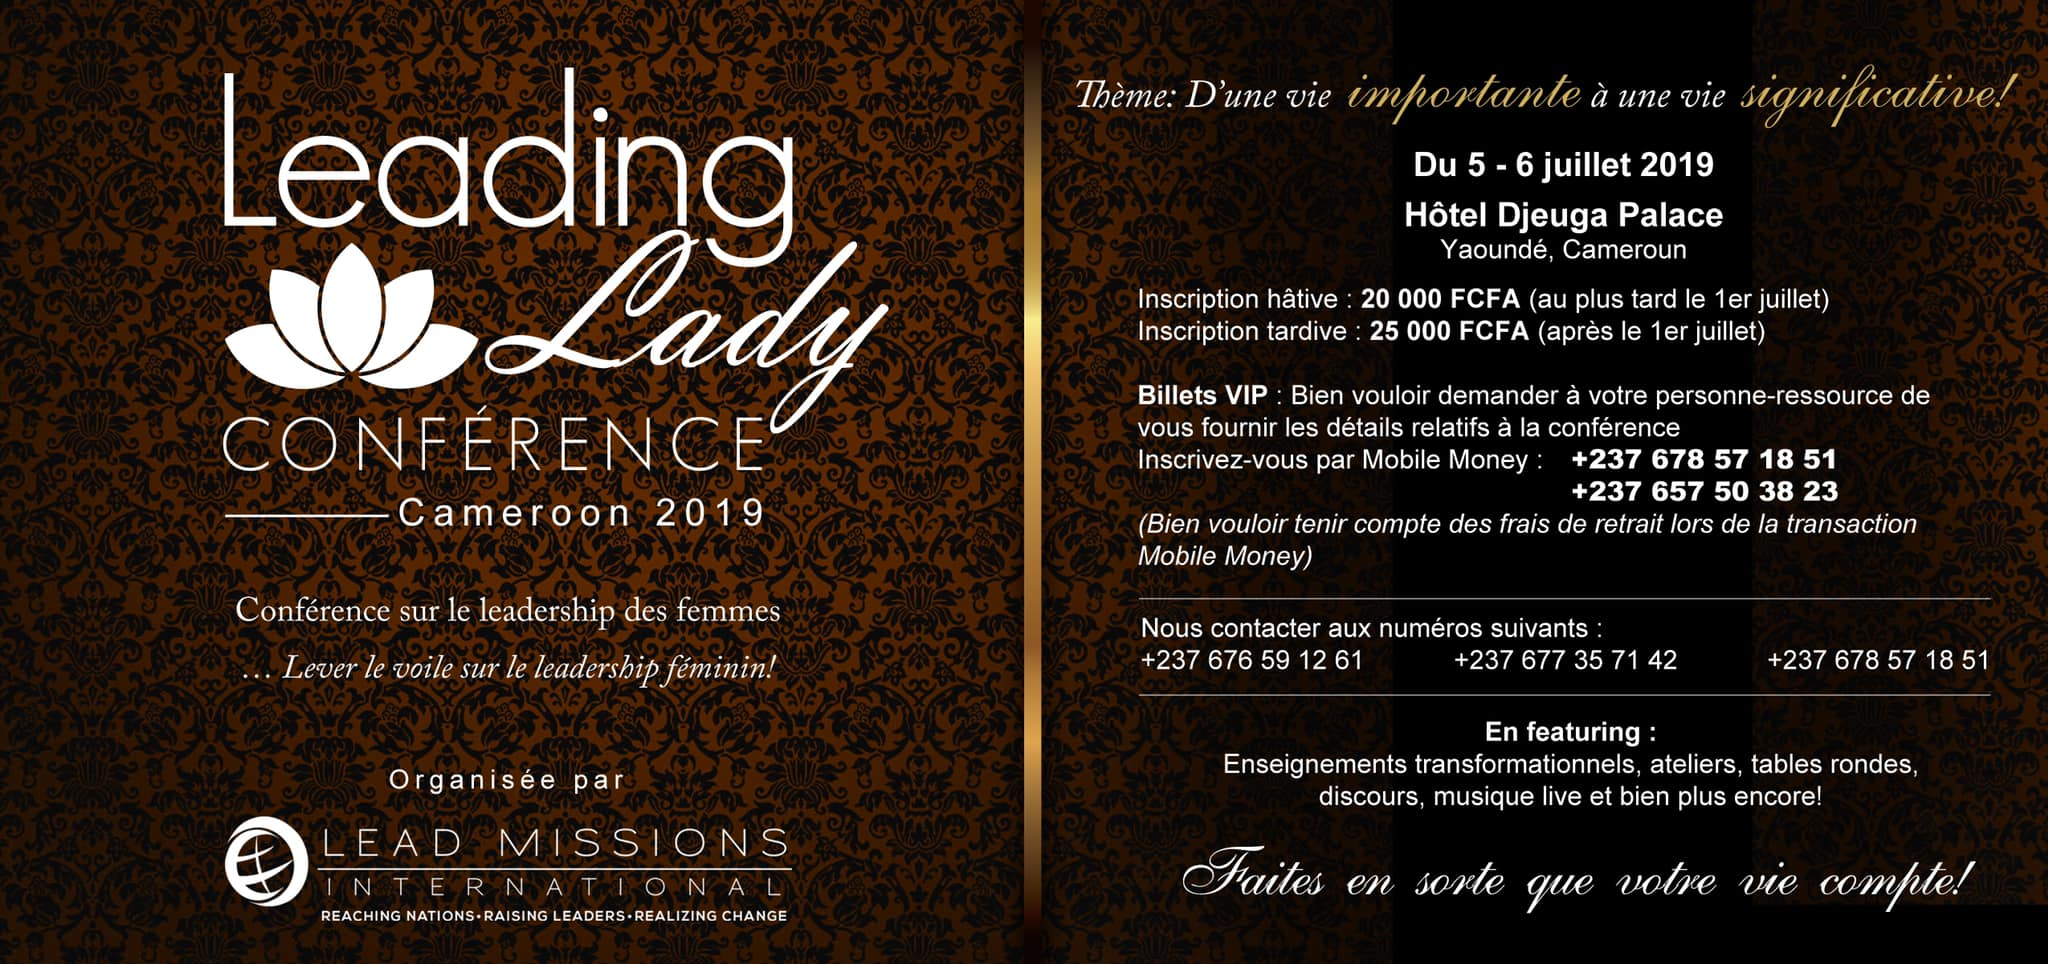 Leading LADY Conference 2019